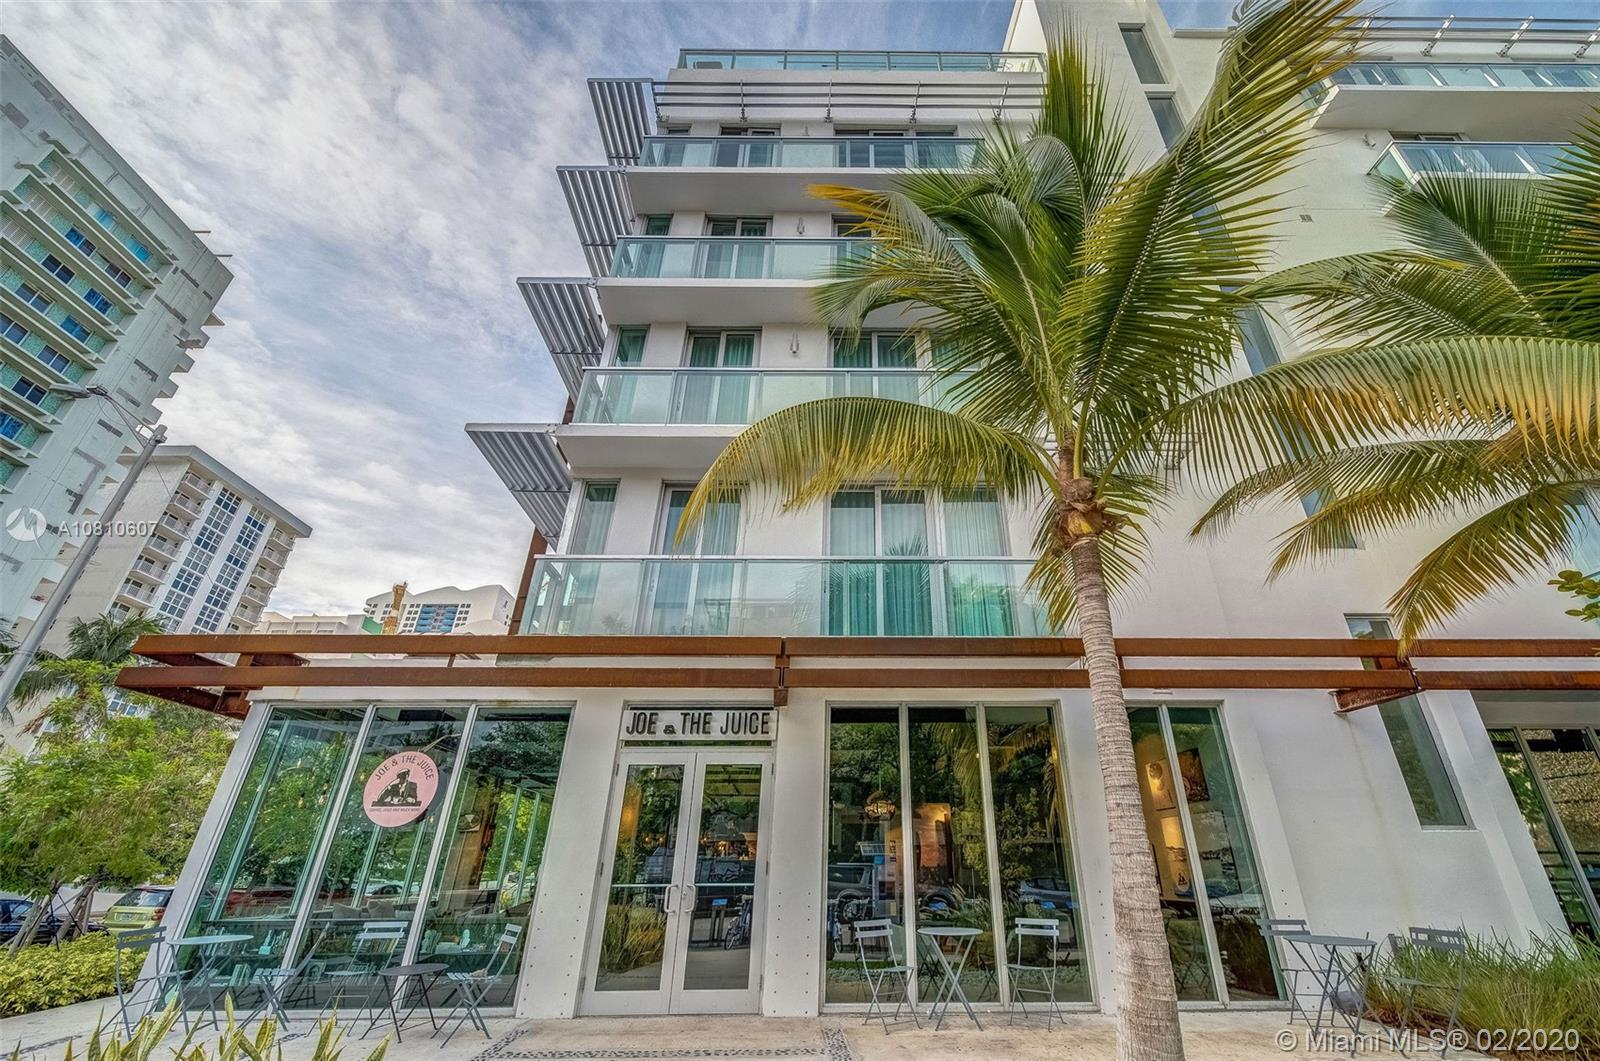 Where smart investing meets stylish living. This polished, all-suite condo/hotel located in the heart of South Beach. Airy, contemporary 1-bedroom penthouse offers free Wi-Fi and smart TV's, as well as kitchenettes, sitting areas, dining rooms and pull-out sofas. Legal condo-hotel zoned for short term rental income. Available on-site program or owner can rent themselves. Above average occupancy for South Beach. Financials available upon request.